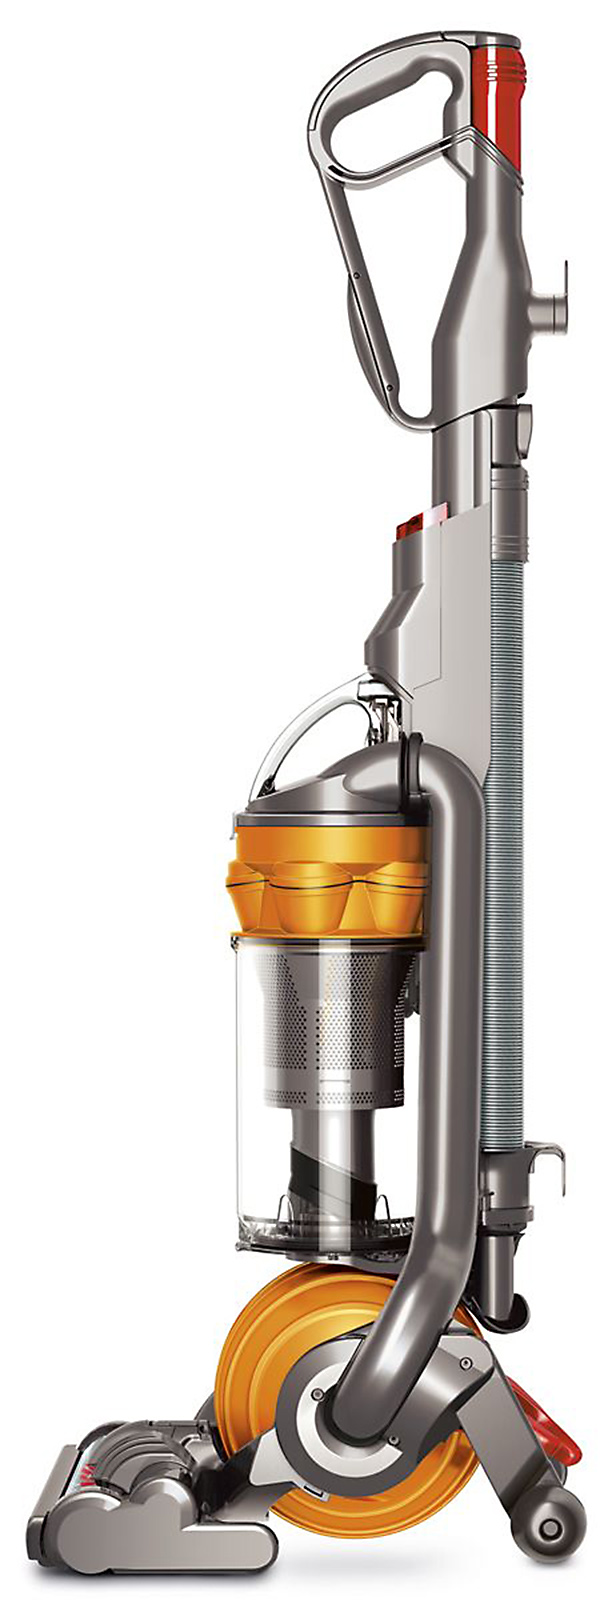 Dyson DC25 All Floors Upright Vacuum Cleaner CLOSEOUT